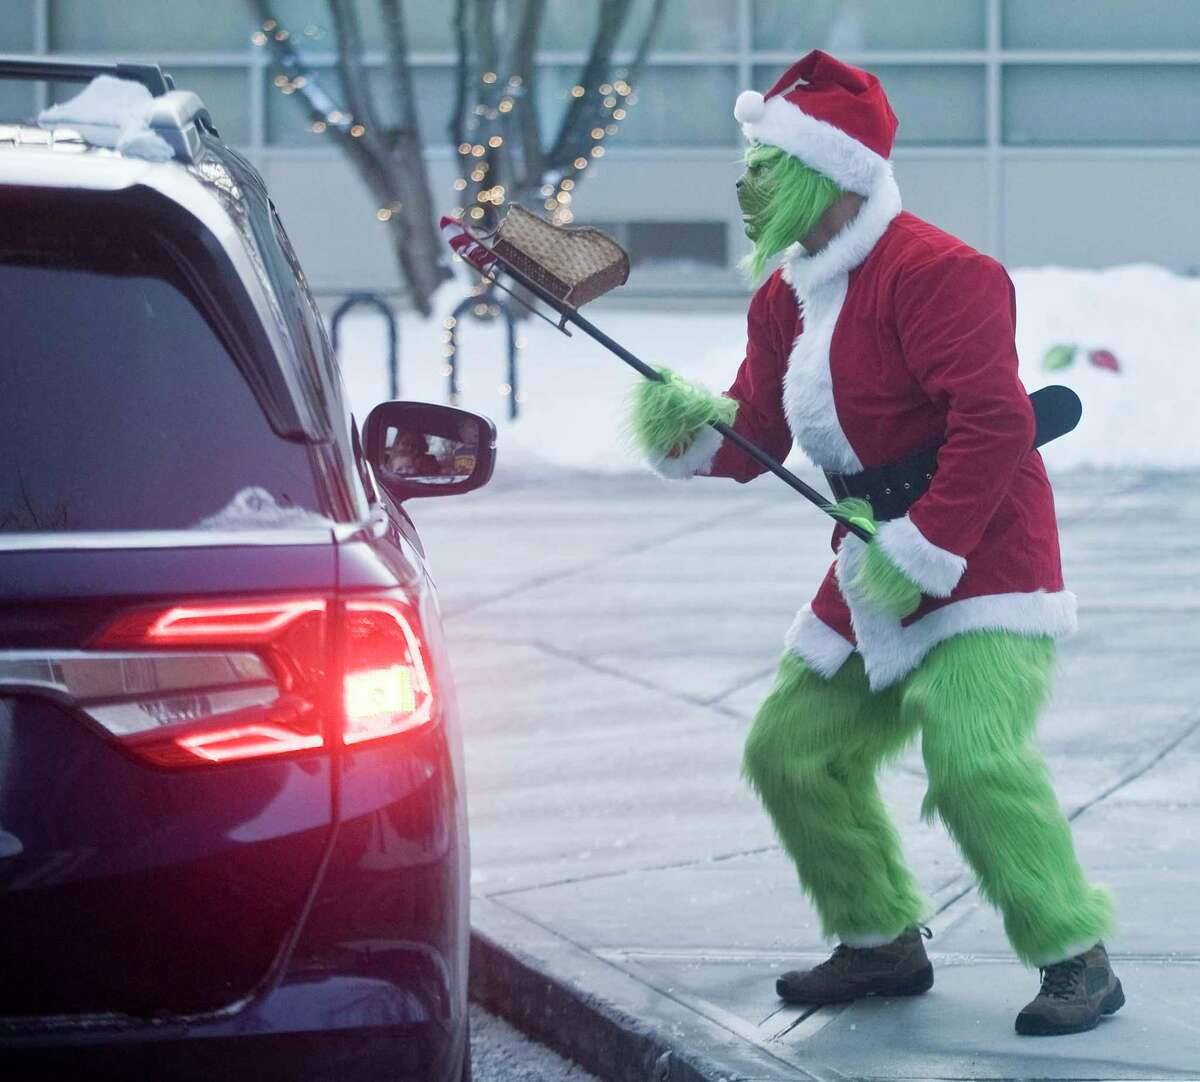 Right, Jim Lewicki, dressed as the Grinch, waits for cars to pull up so he can pass candy through the window.